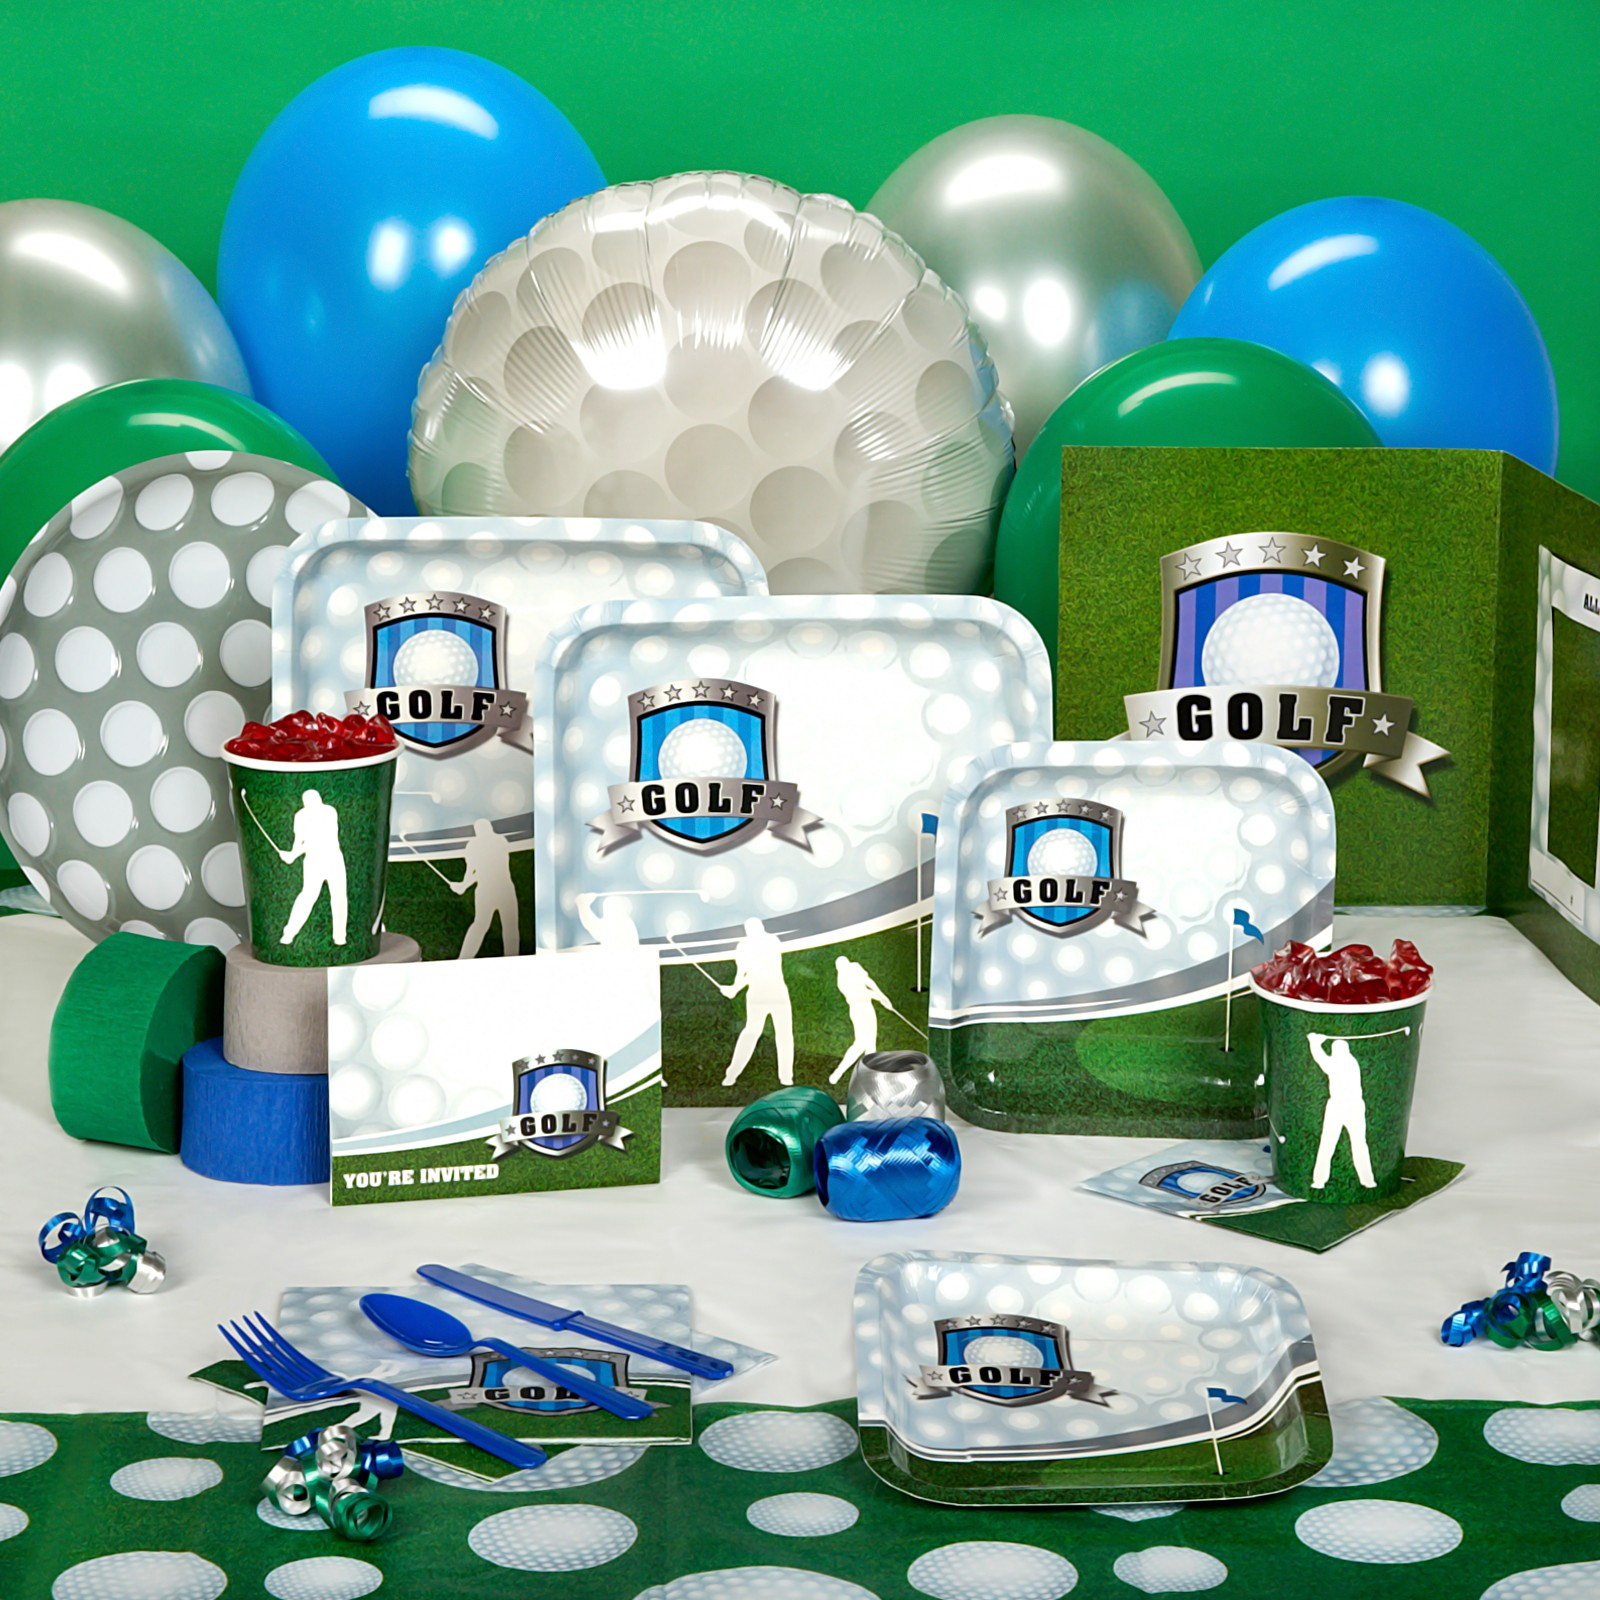 Bear river photo greetings golf birthday party invitation for Decoration goods